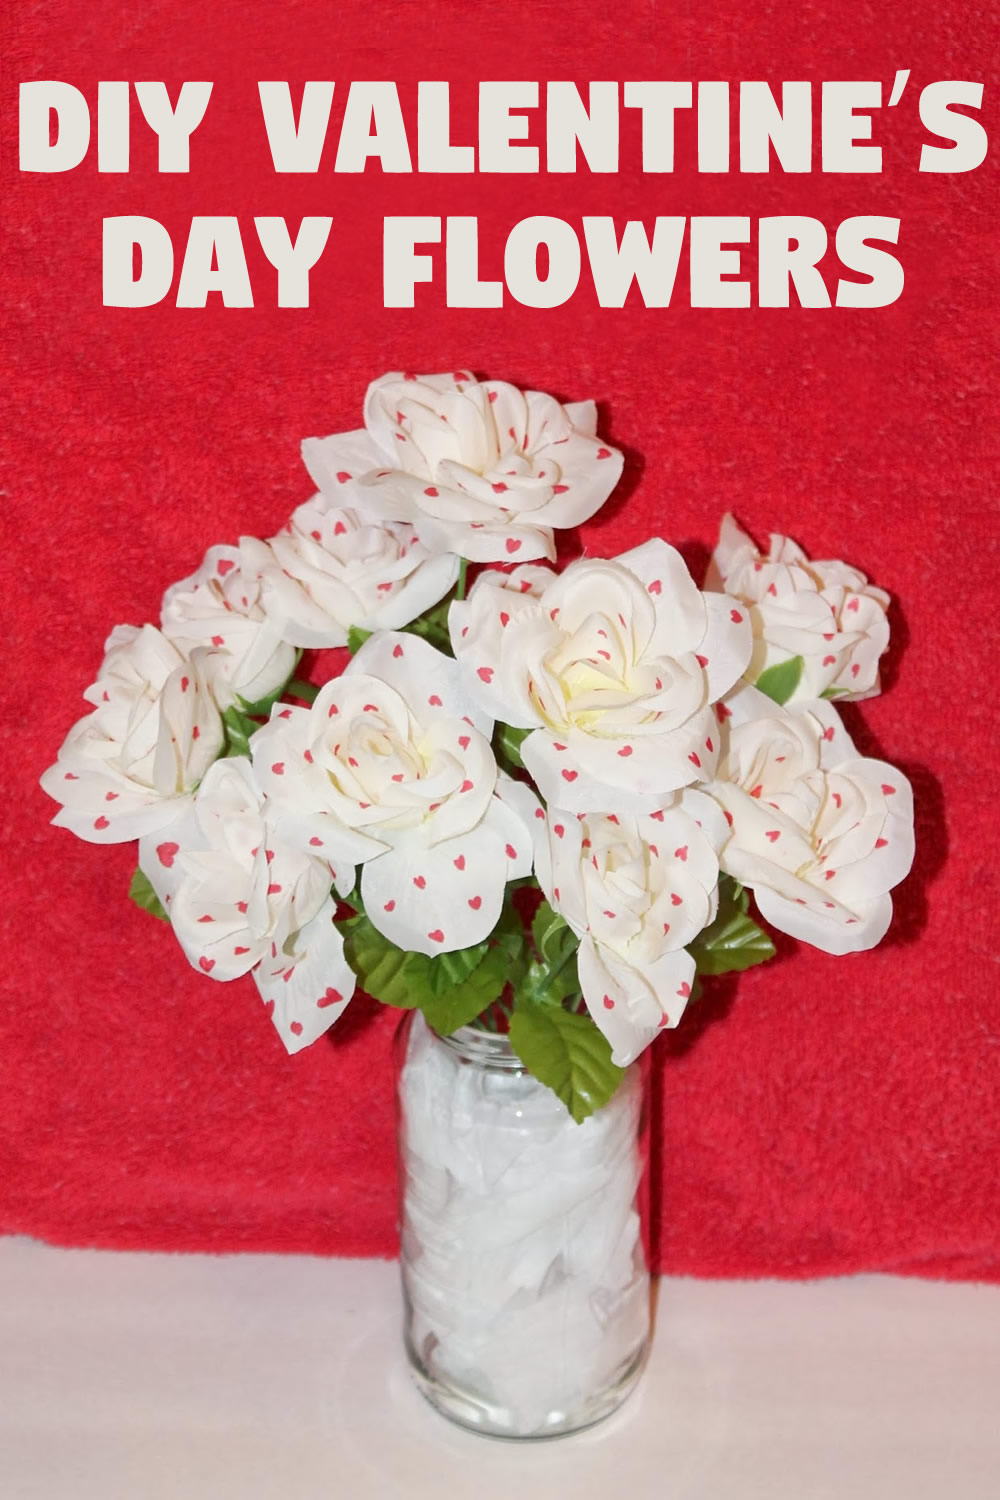 DIY Valentine's Day Flowers